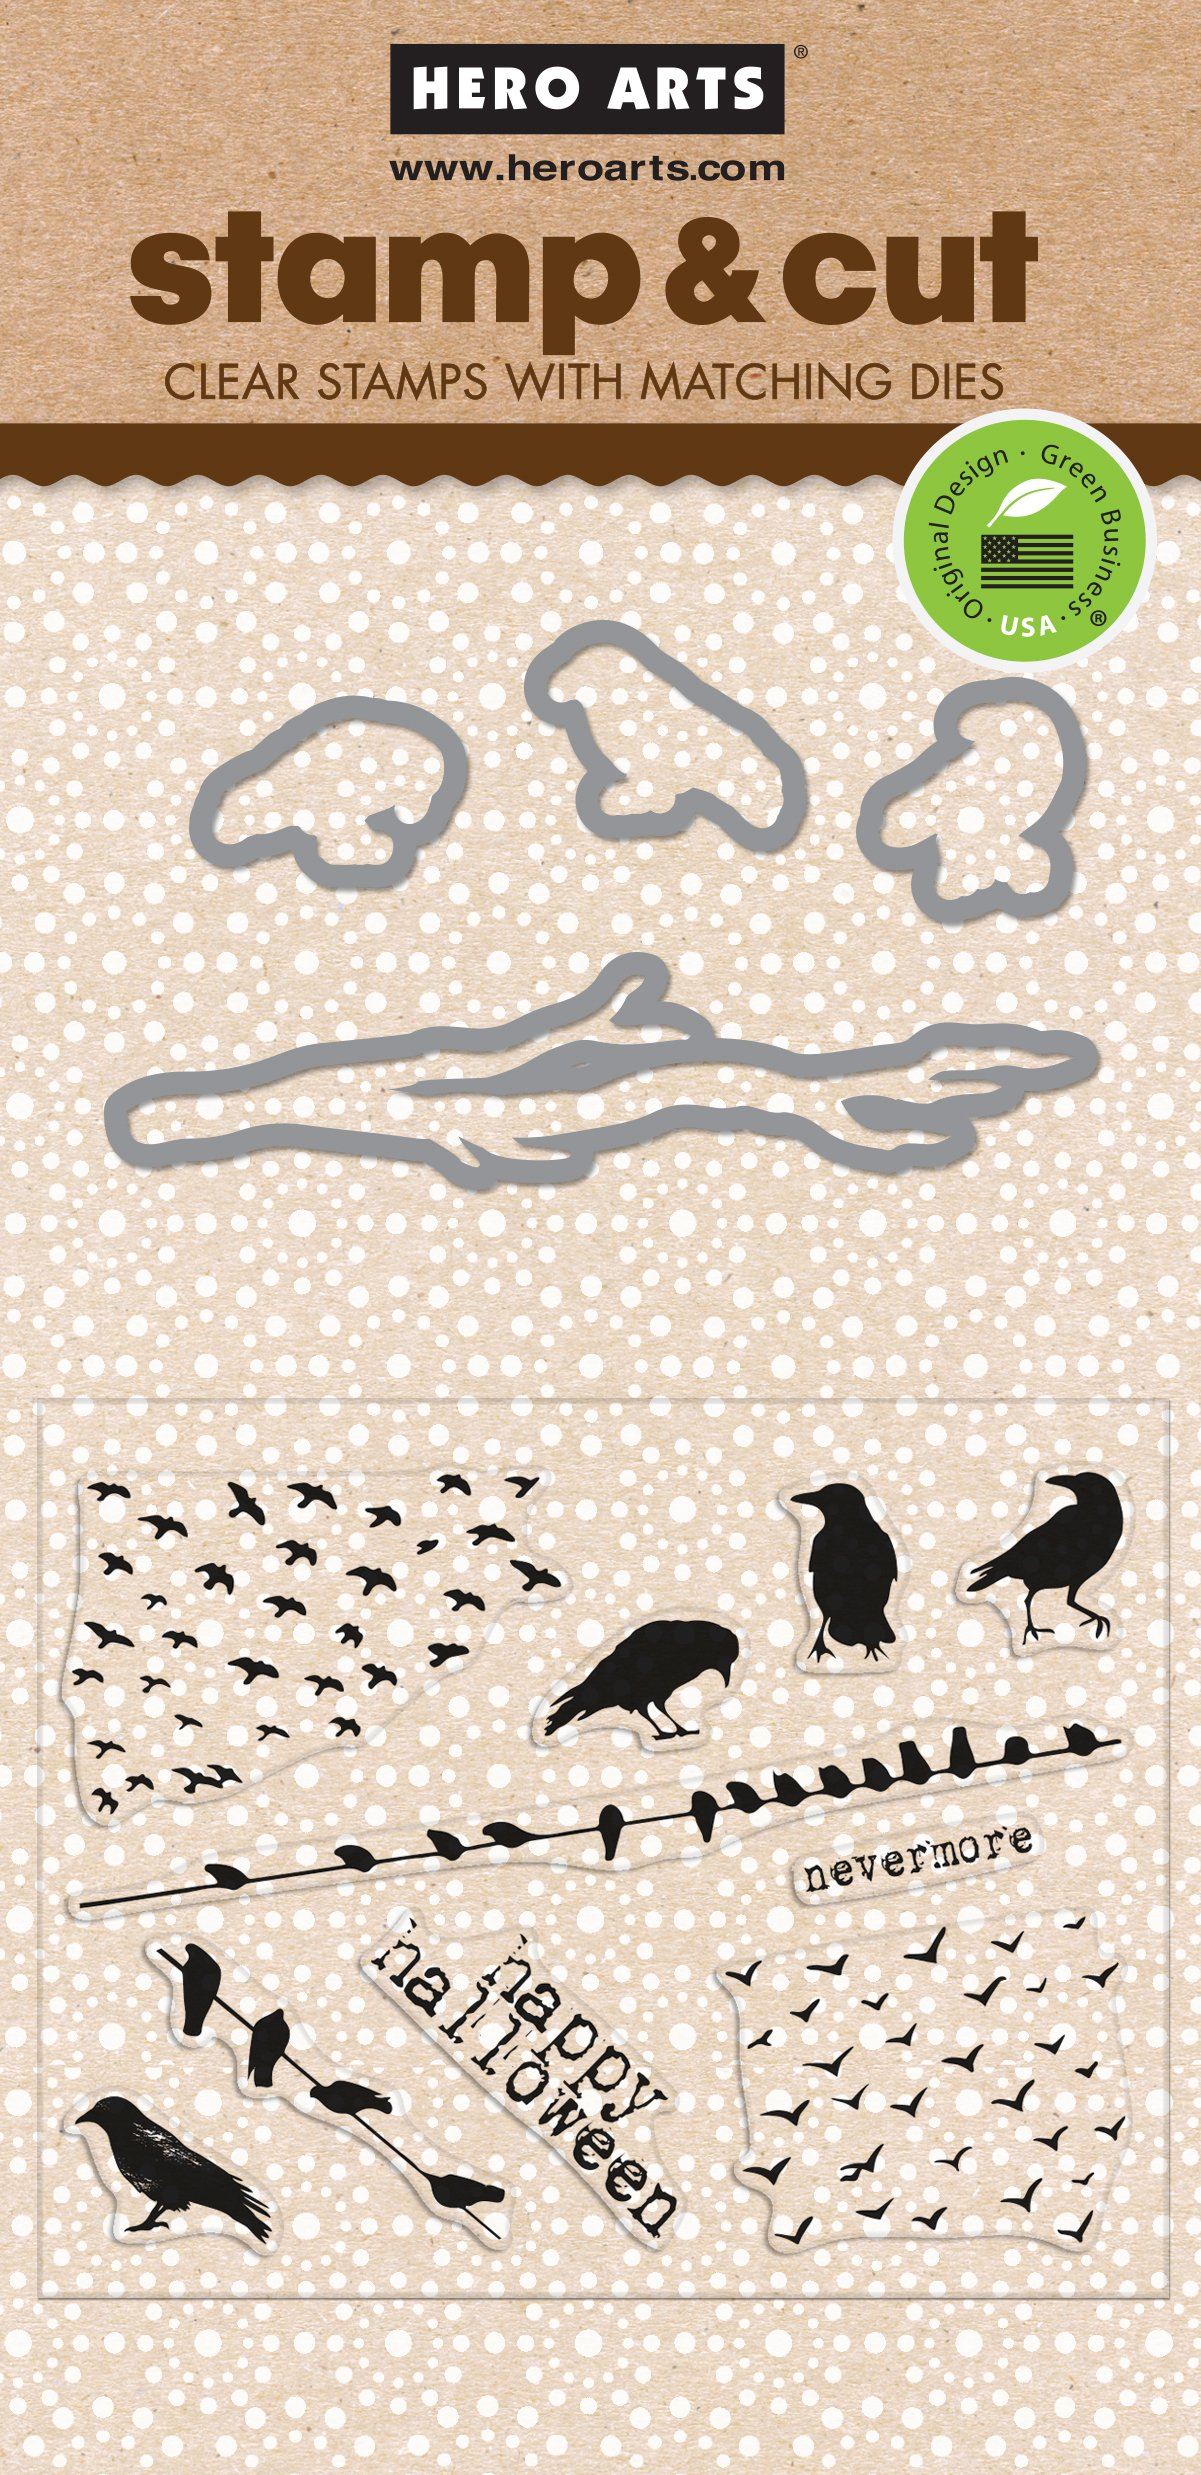 Hero Arts DC188 The Birds Stamp & Cut Card Making Kit